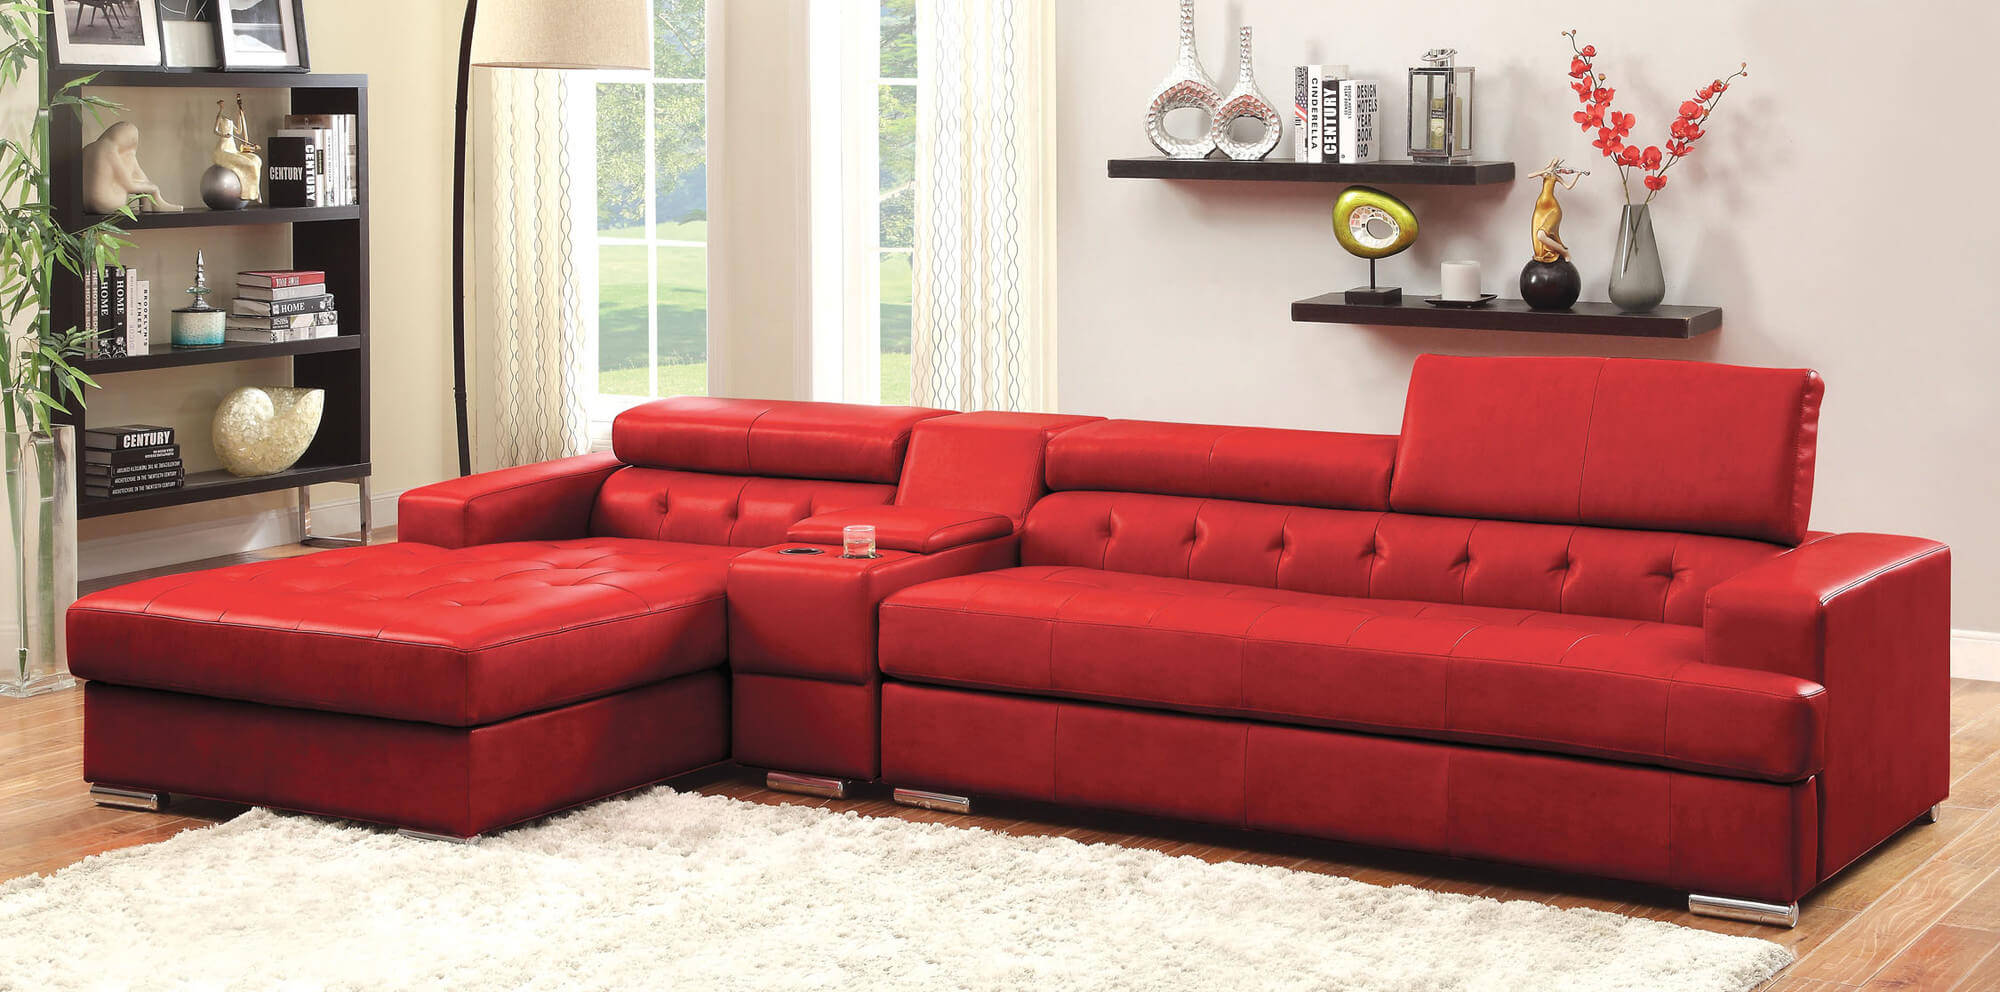 Red Sectional Sofa | aign.digimerge.net